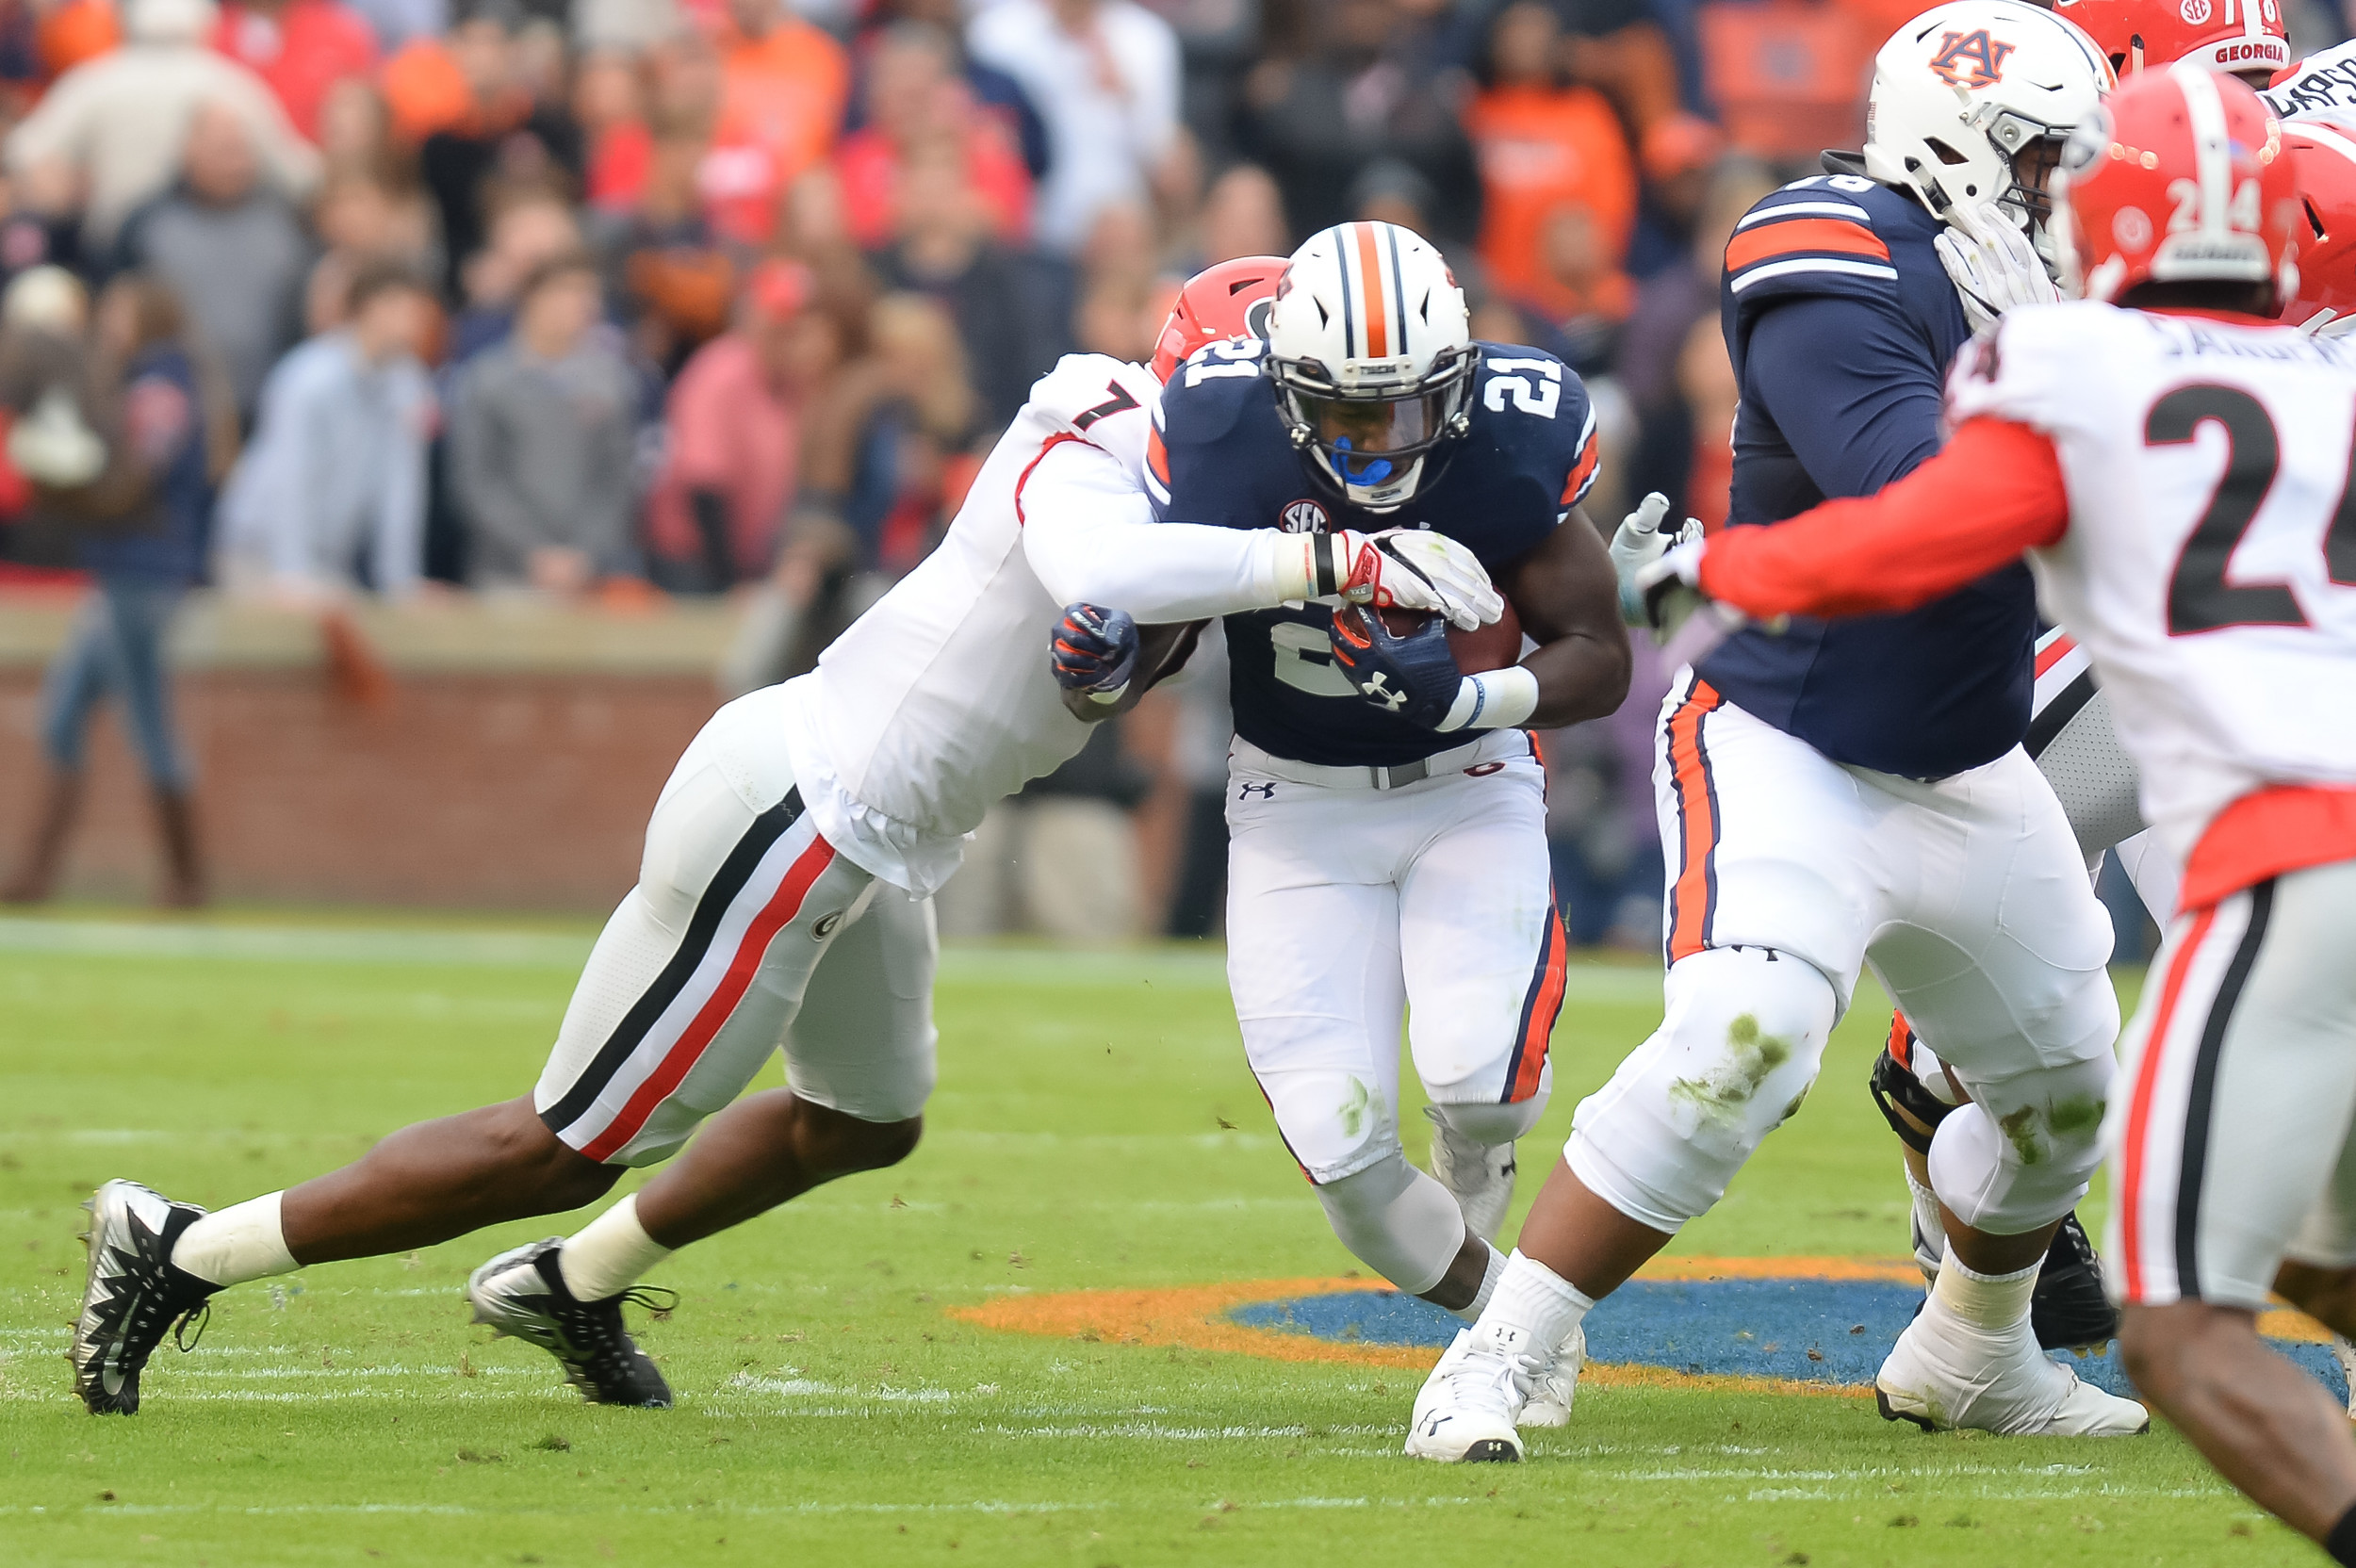 Georgia Bulldogs linebacker Lorenzo Carter (7) tackles Auburn Tigers running back Kerryon Johnson (21) during the first half of Saturday's game, at Jordan-Hare Stadium.